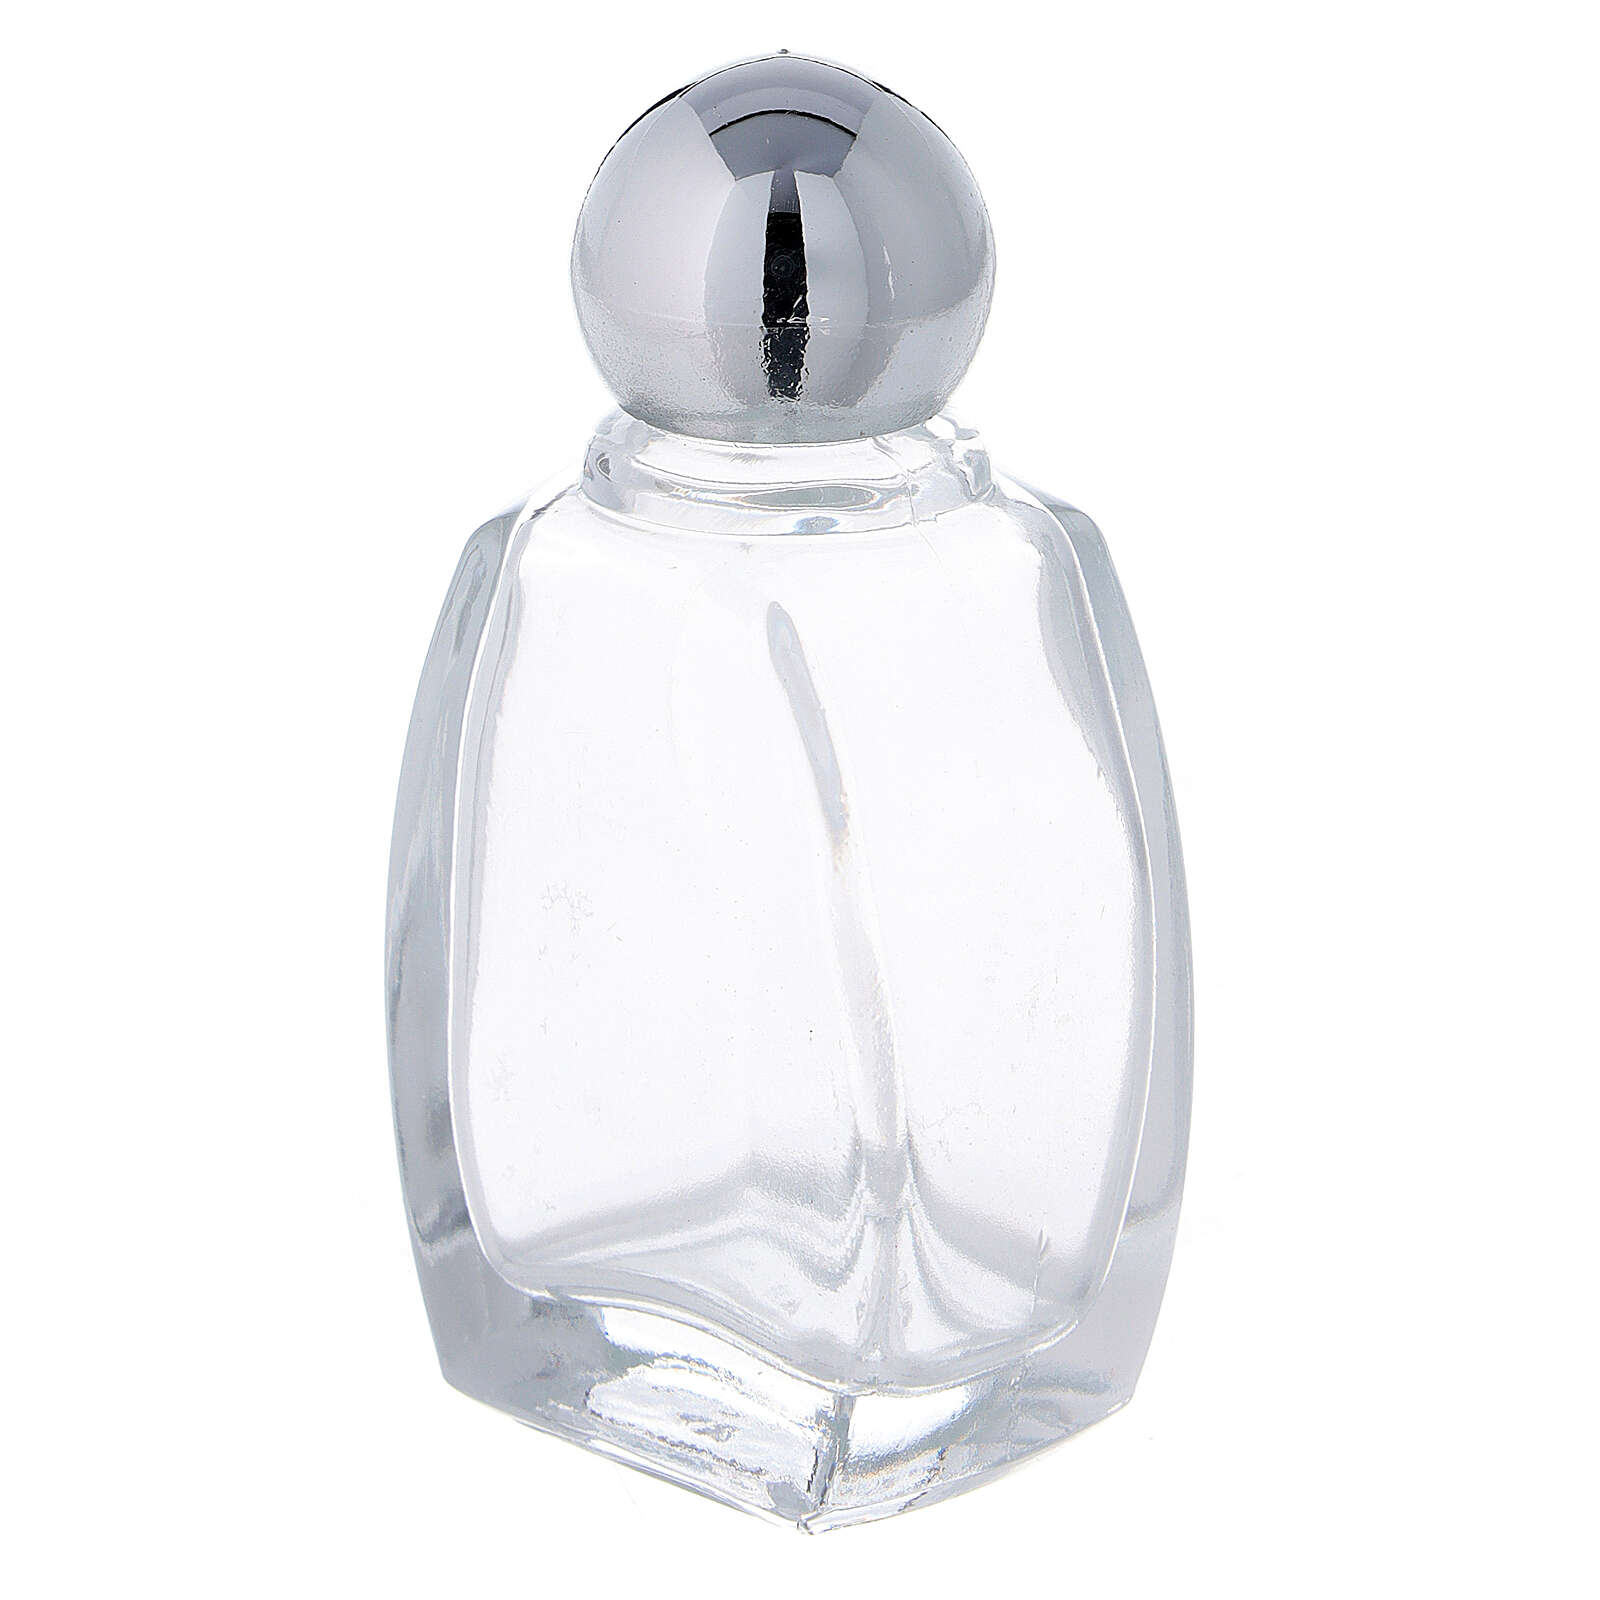 15 ml holy water glass bottle (50-PIECE PACK) 3